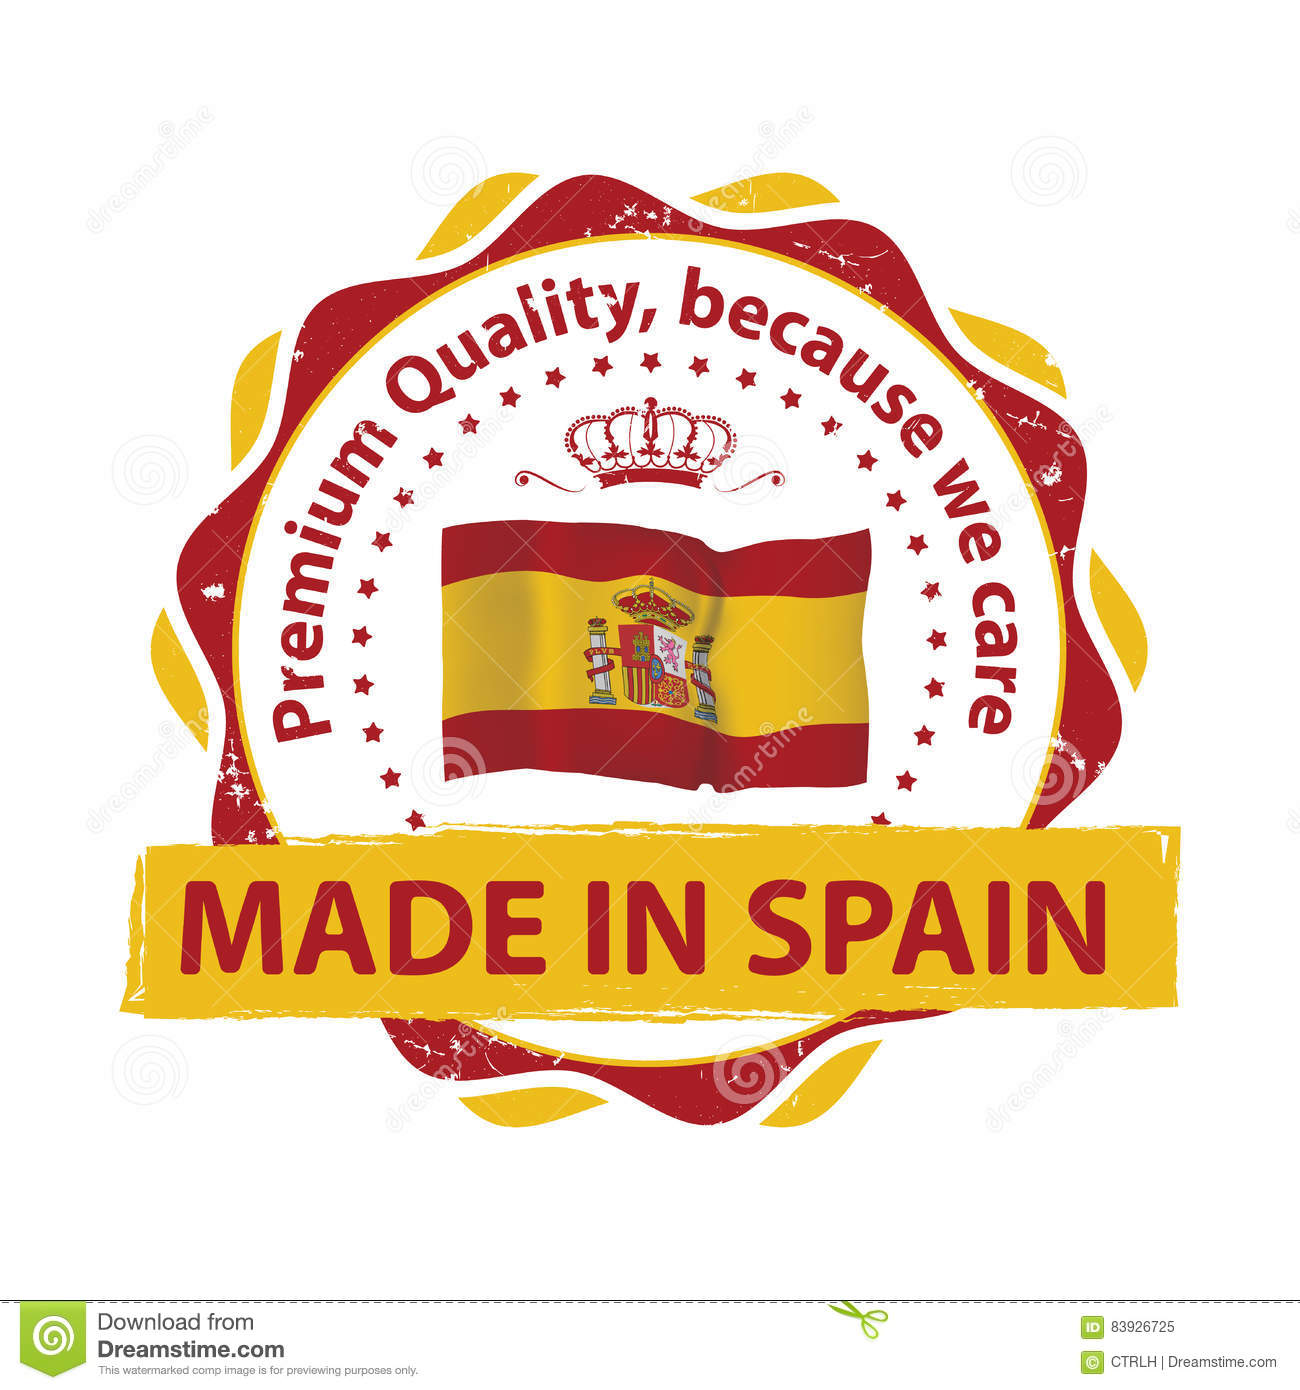 Made In Spain, Premium Quality Stamp Stock Vector - Illustration of